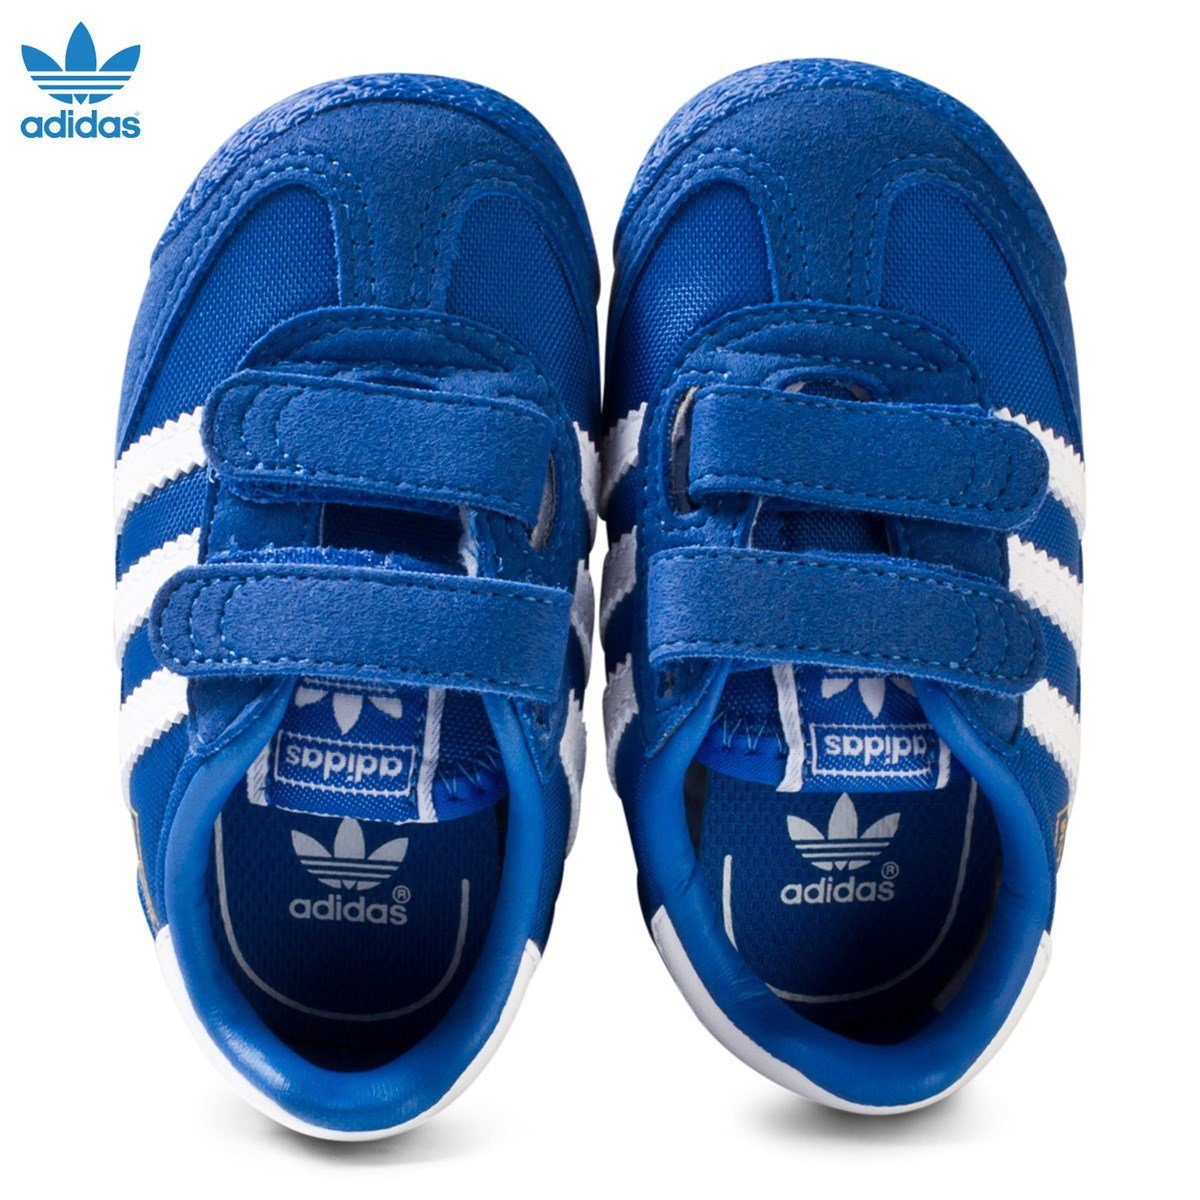 adidas Originals - Blue and White Dragon Infant Trainers ...